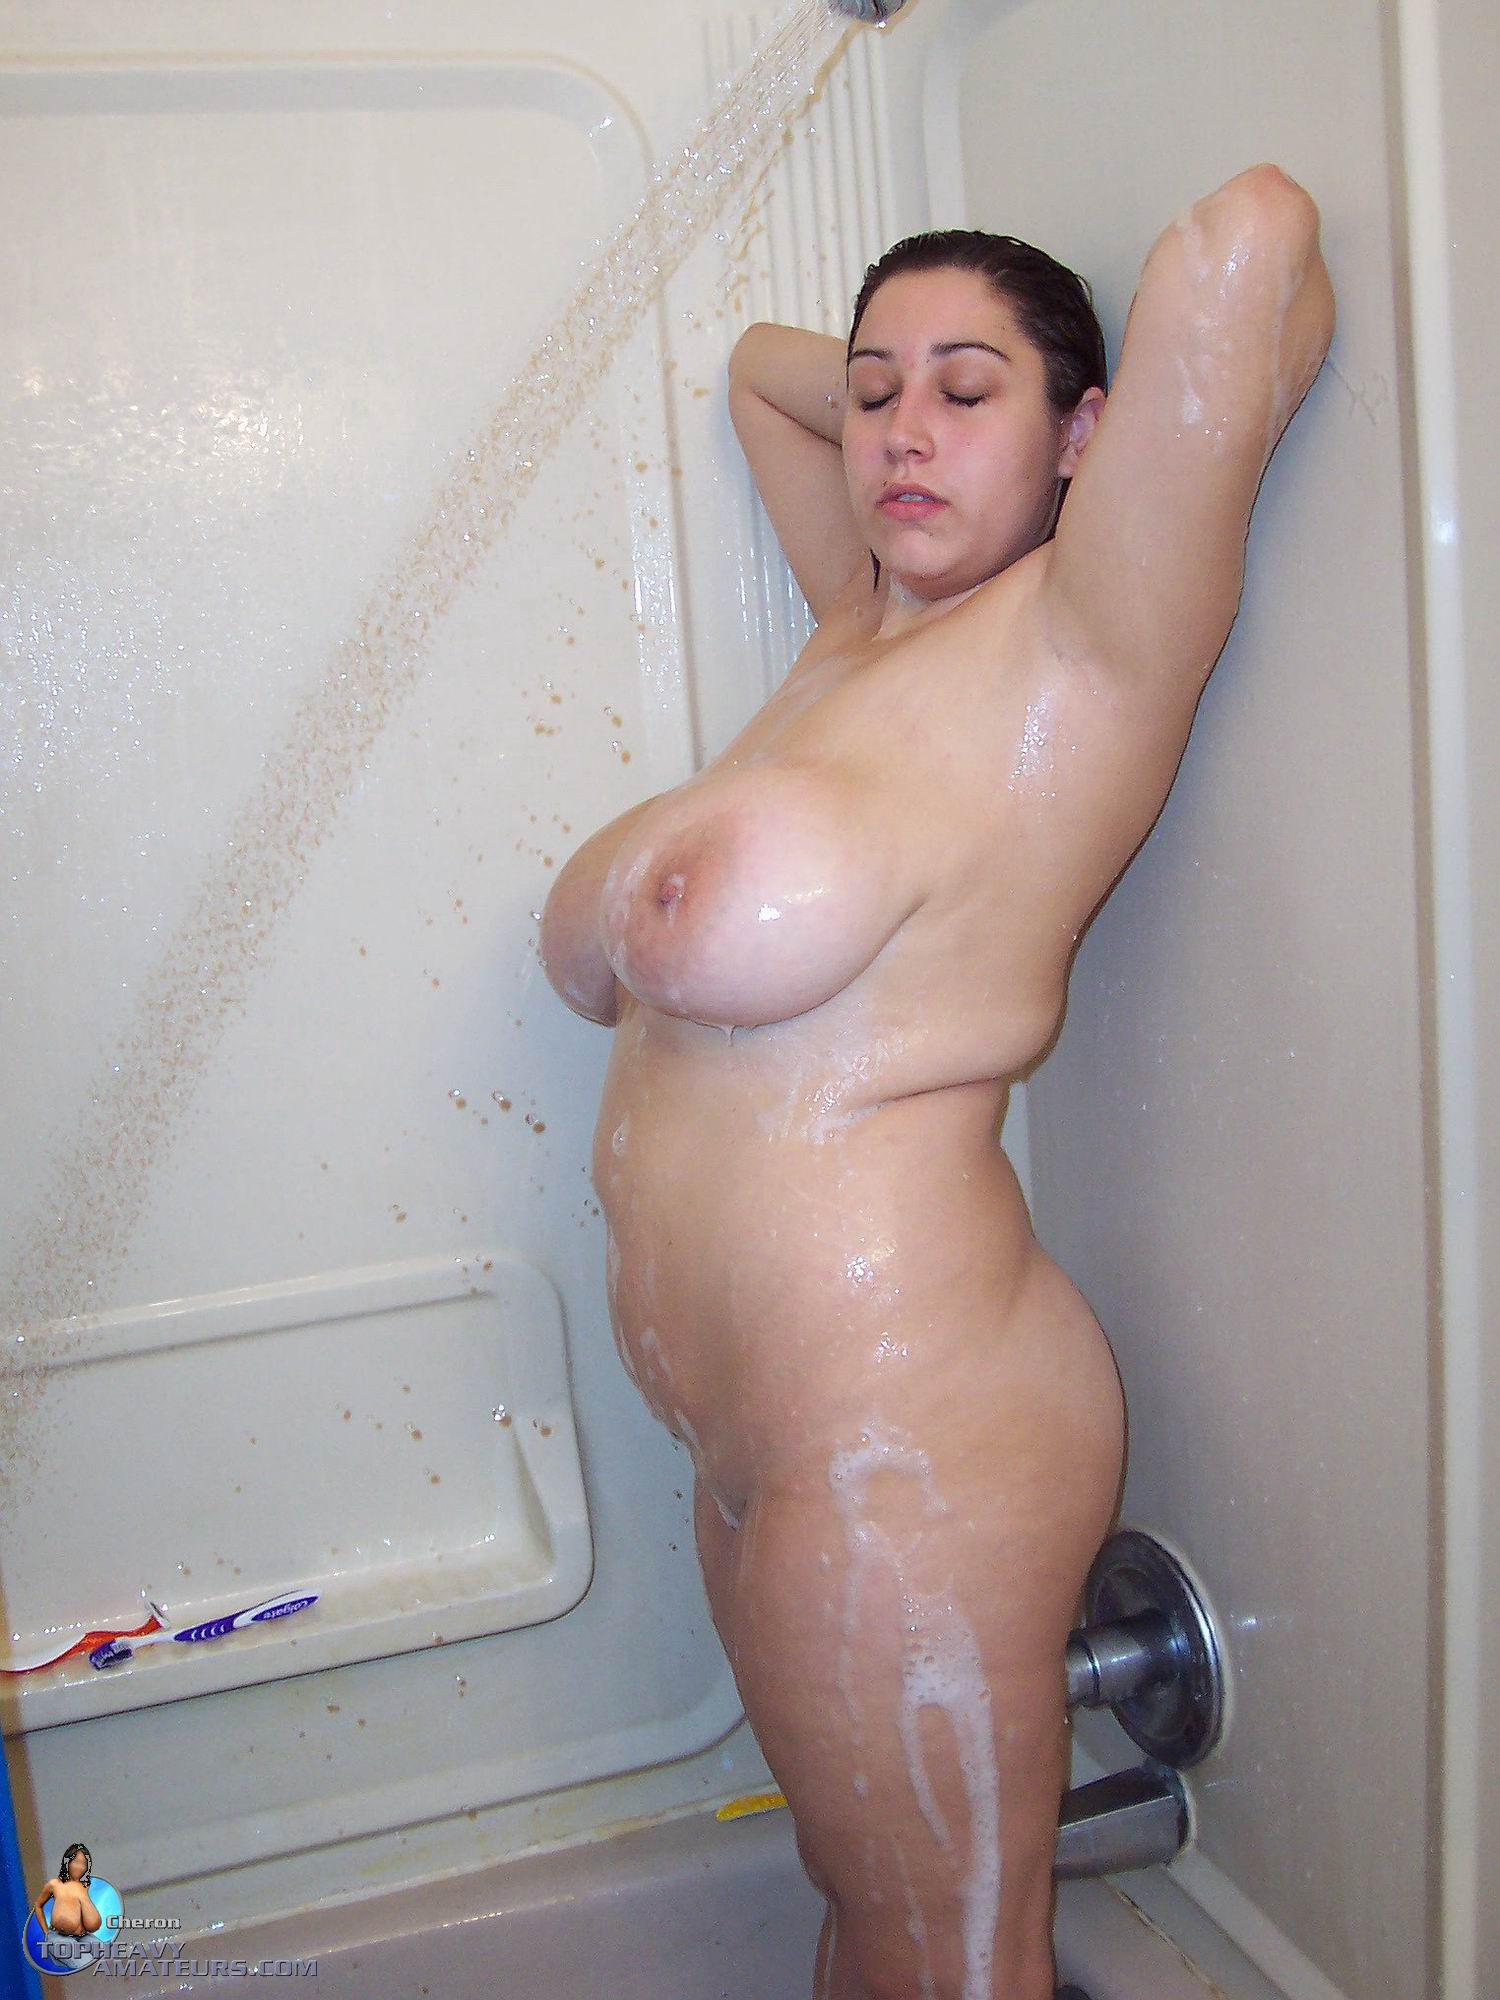 Valuable huge boobs shower chubby consider